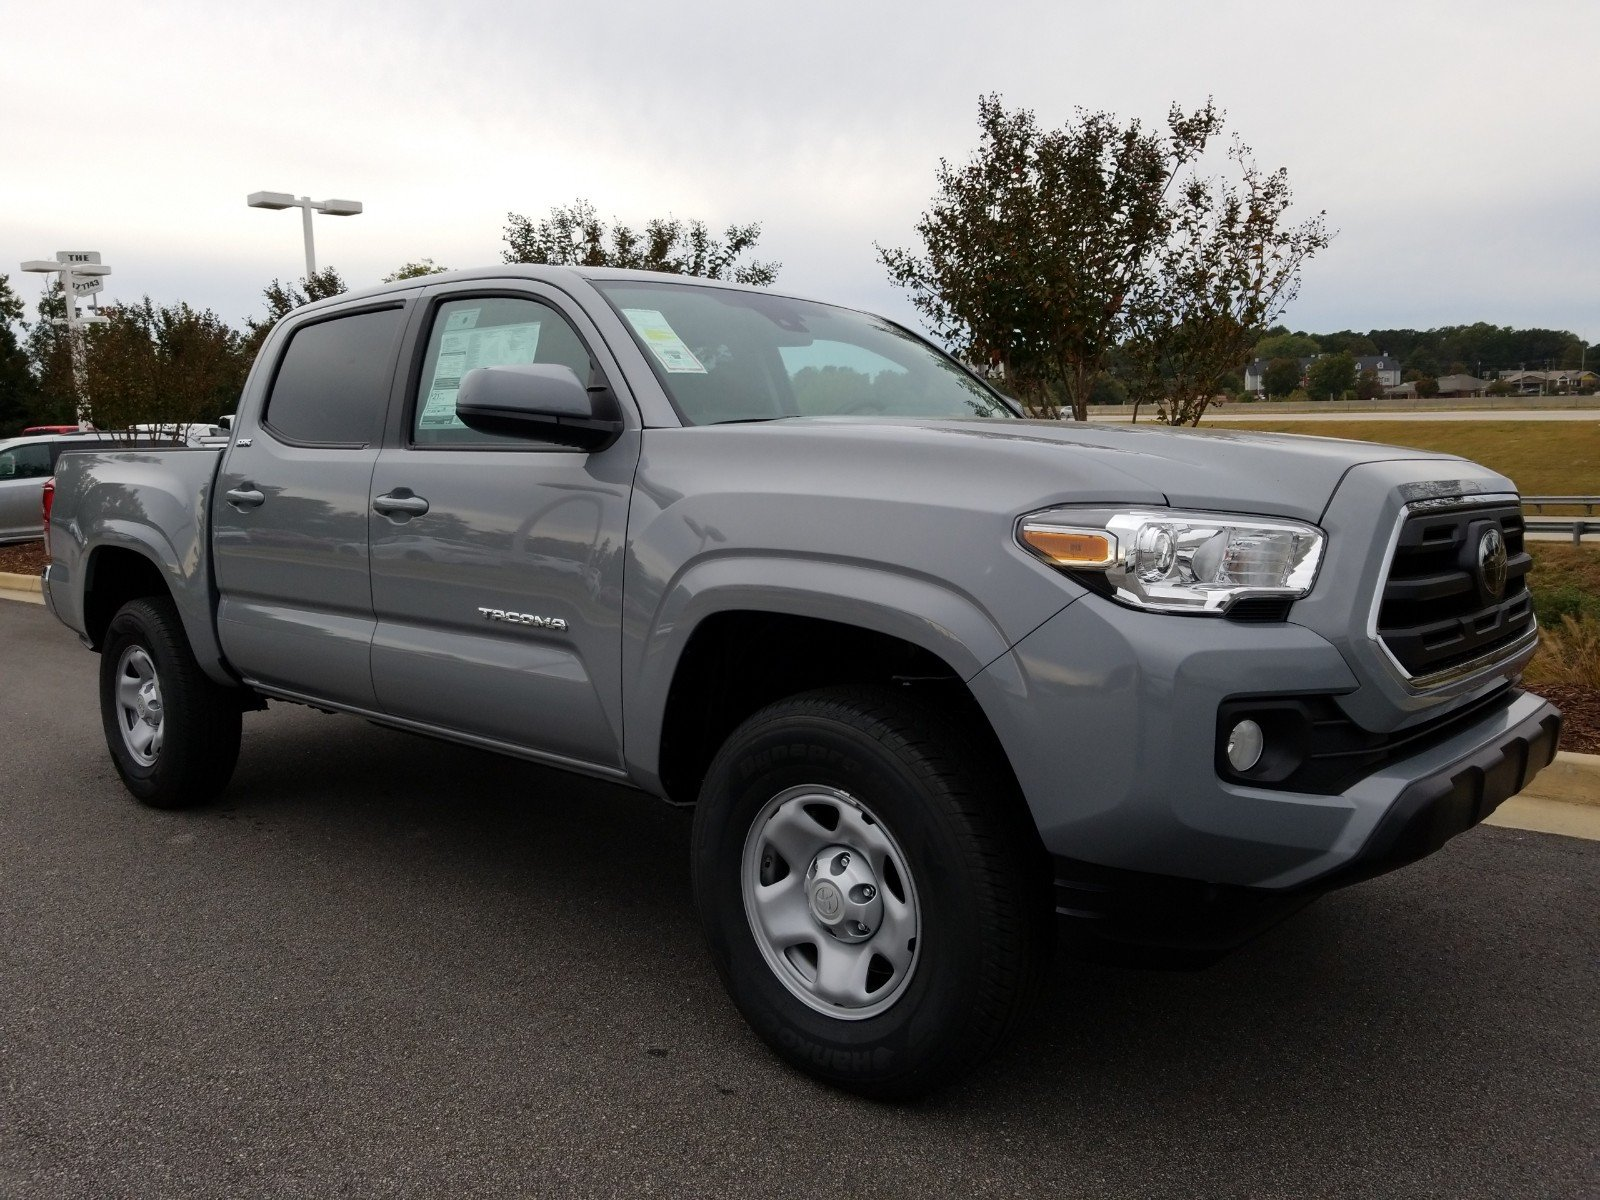 New 2019 Toyota Ta a SR5 Crew Cab Pickup in Gainesville